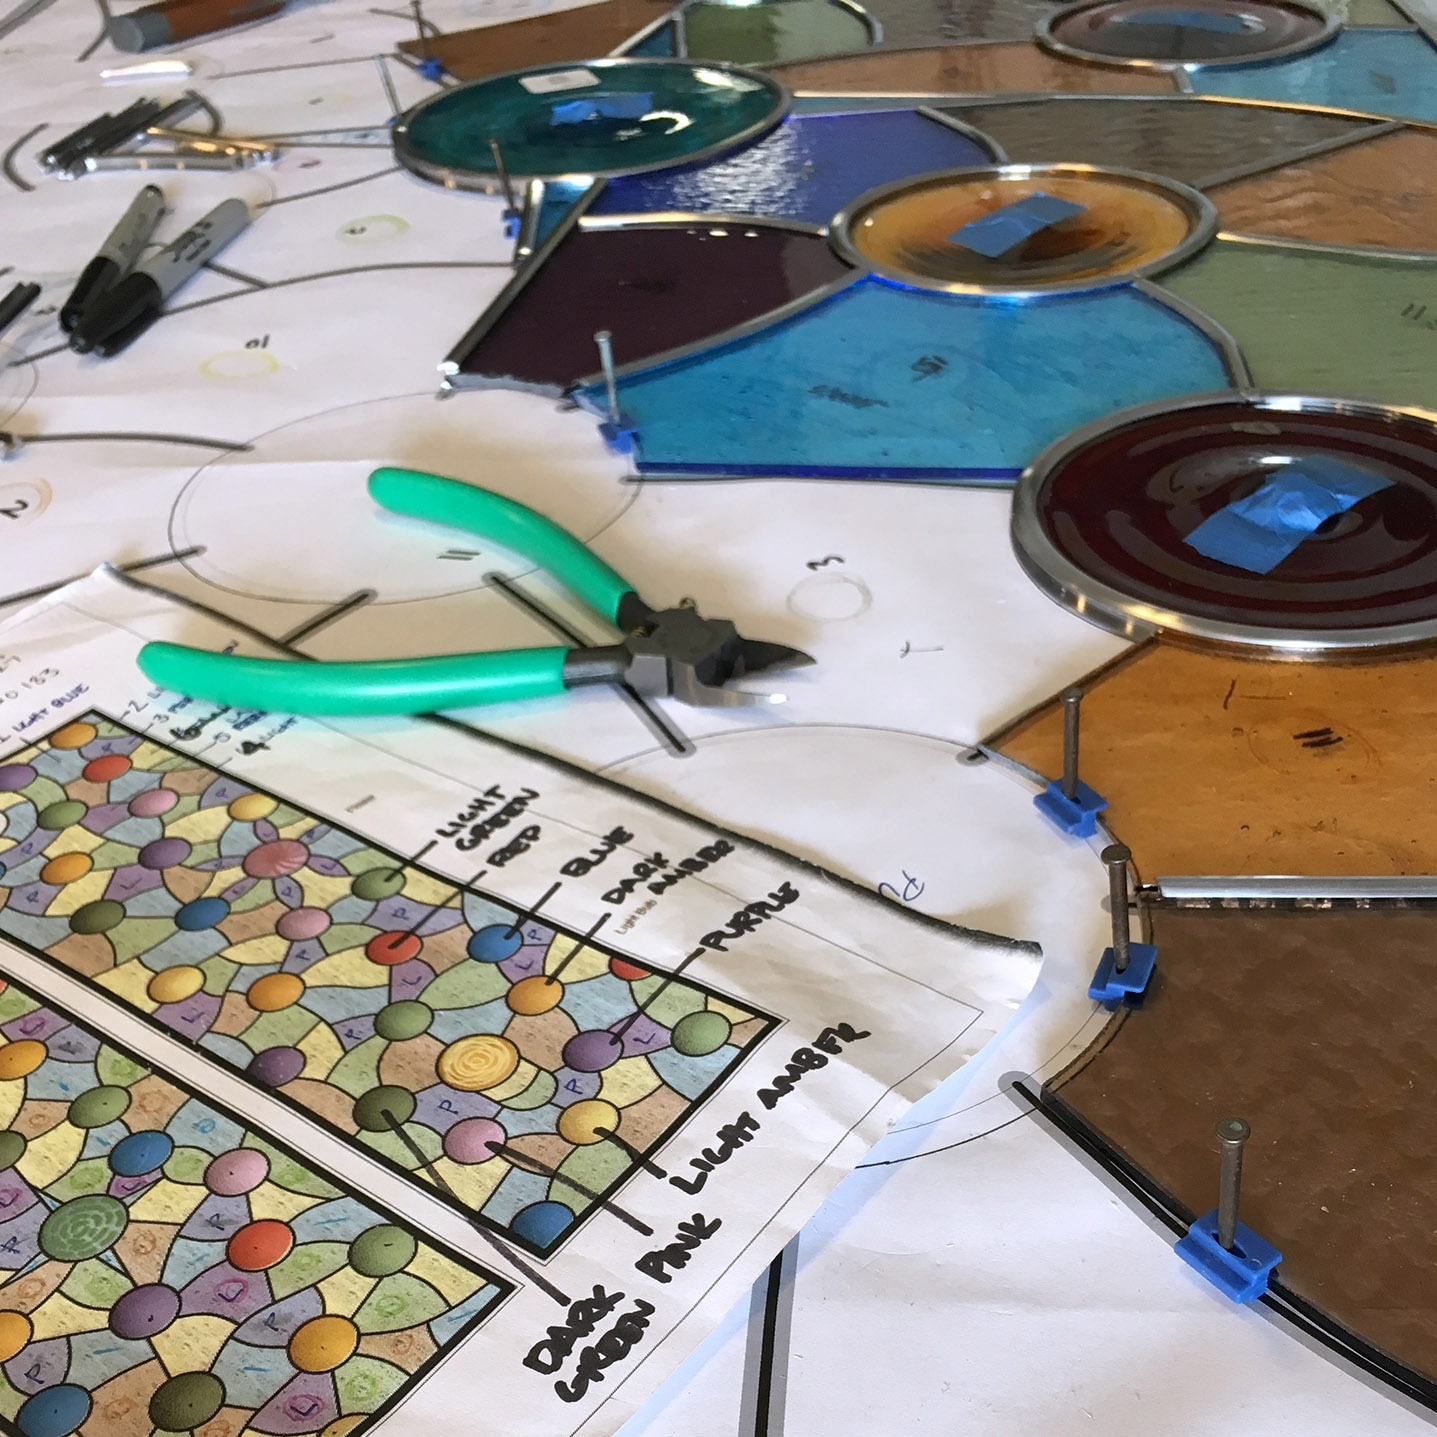 fabricating leaded glass rondel leaded glass stained glass studio palo alto atherton california san francisco san jose legacy glass2.jpg